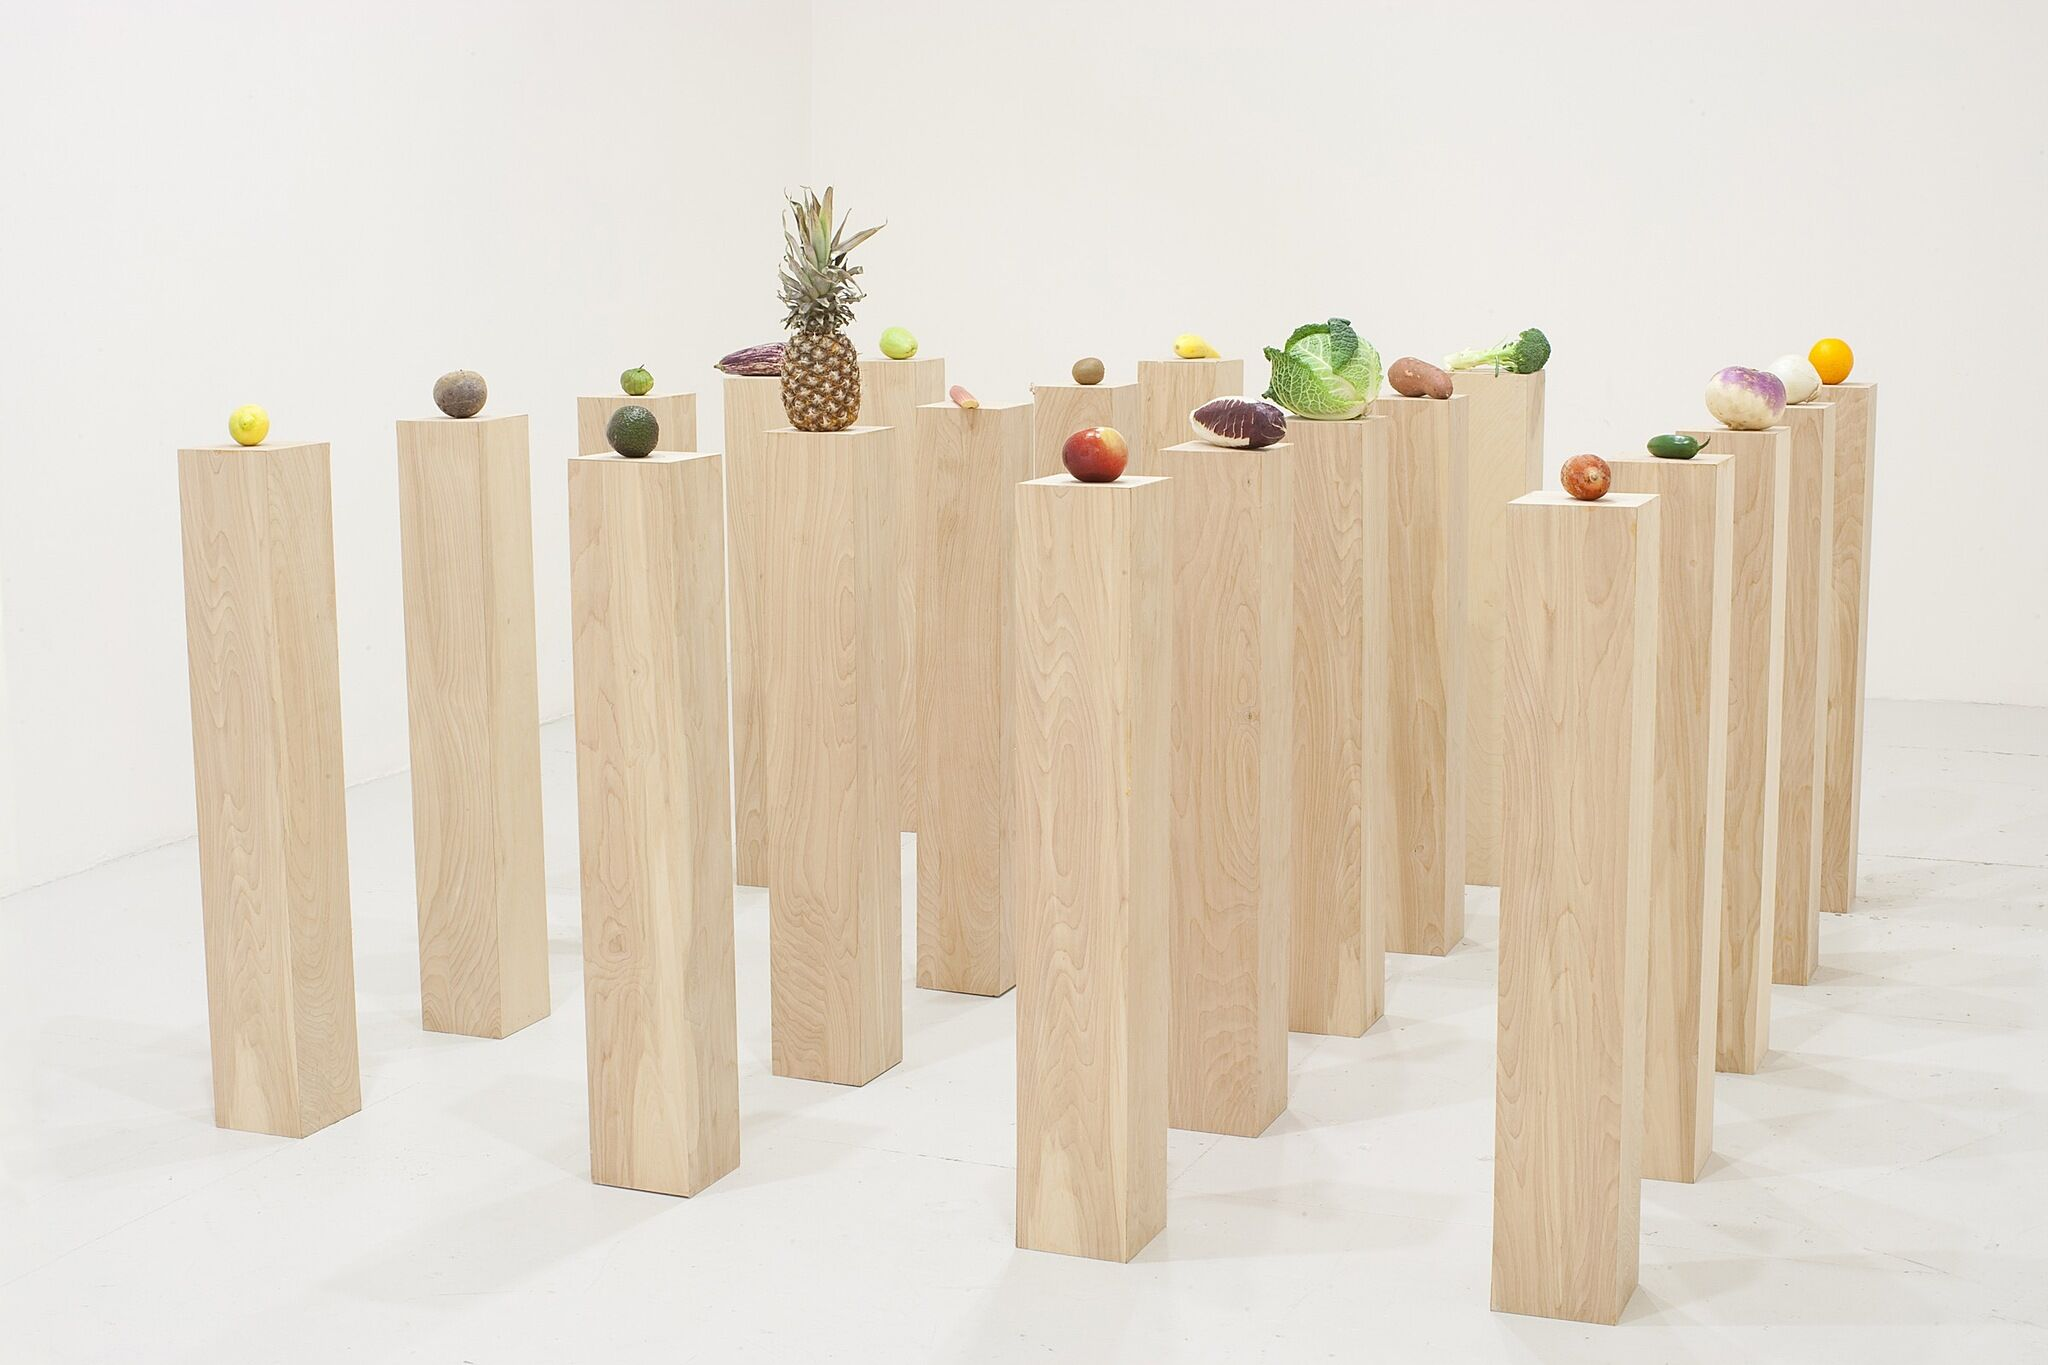 A photo of various fruits and vegetables perched on wood plinths